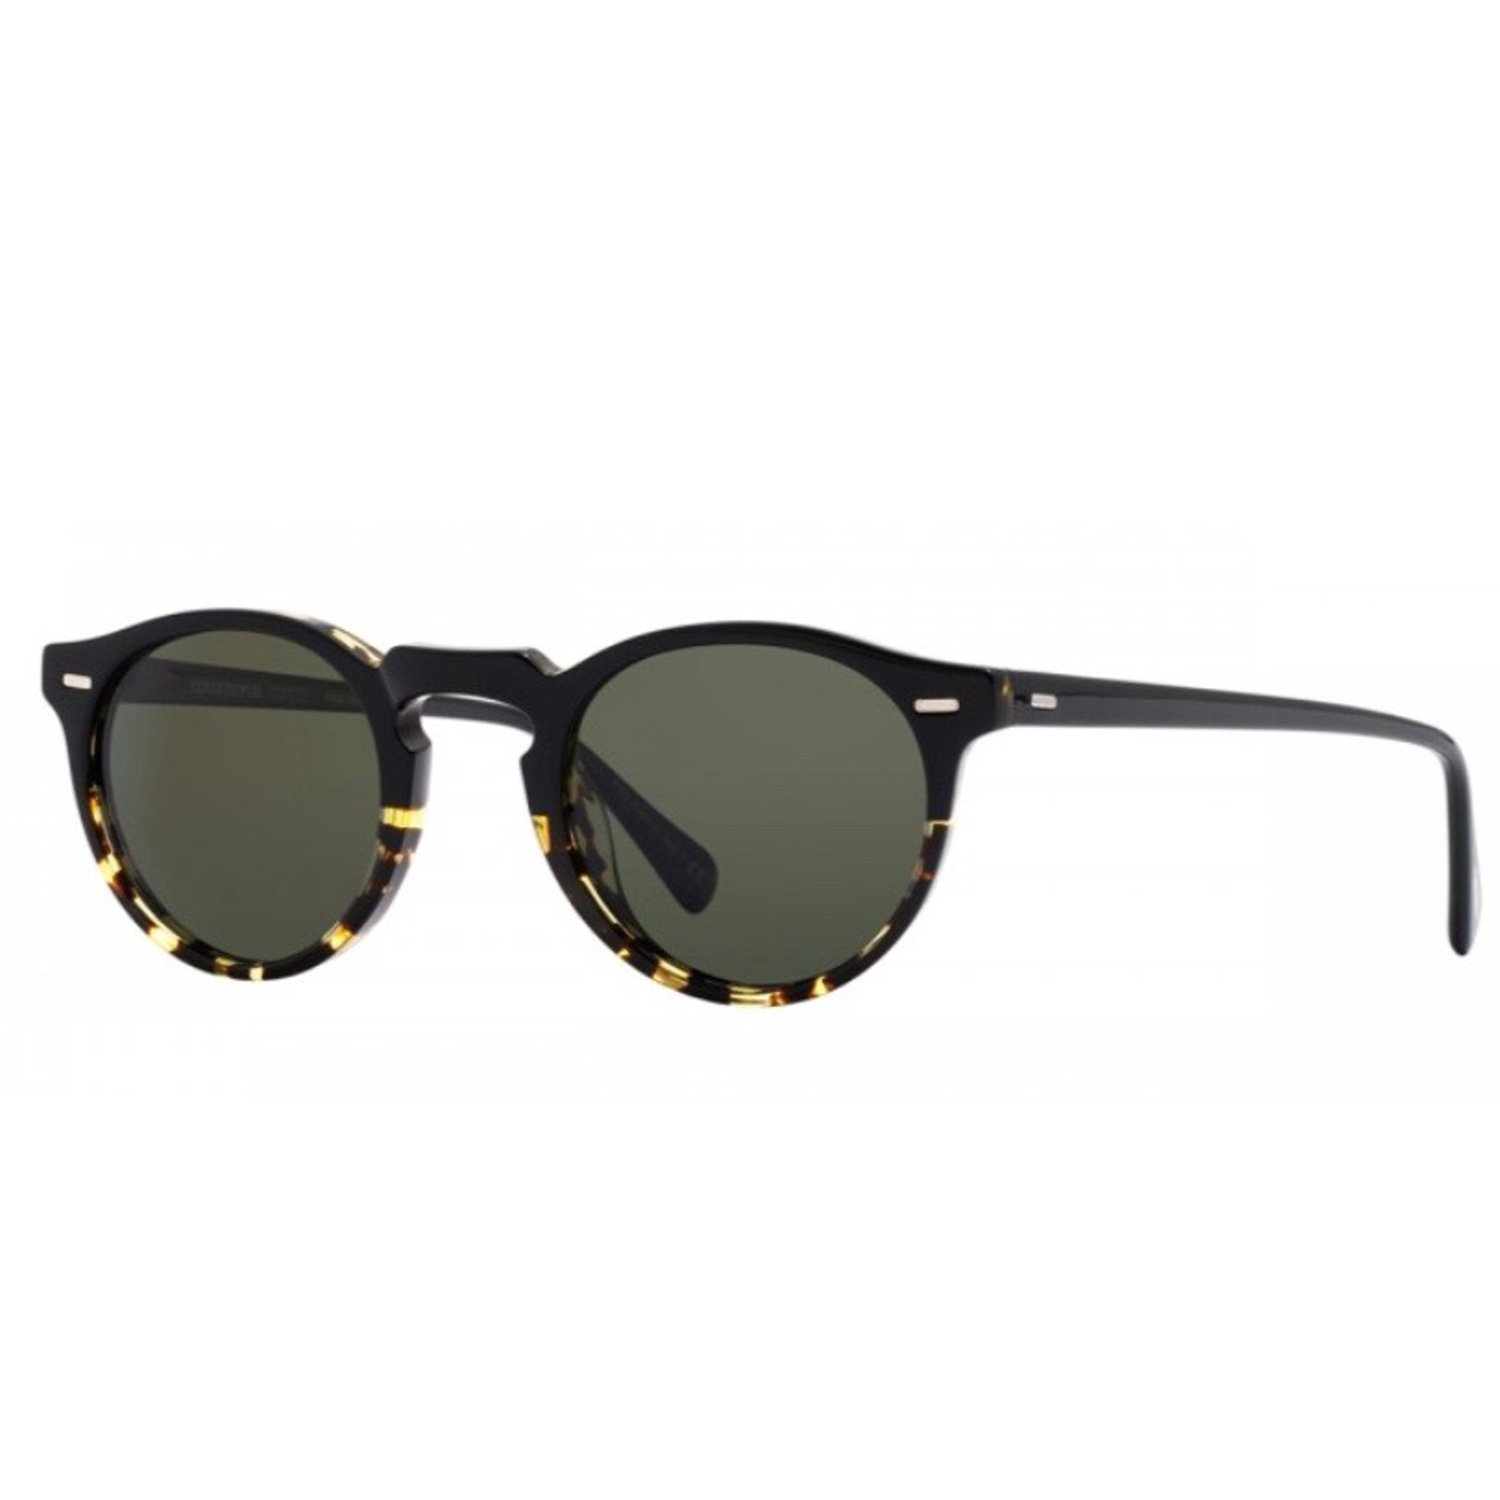 8d3295d961edc2 Amazon.com: Oliver Peoples Gregory Peck Sunglasses 100% Authentic: Clothing